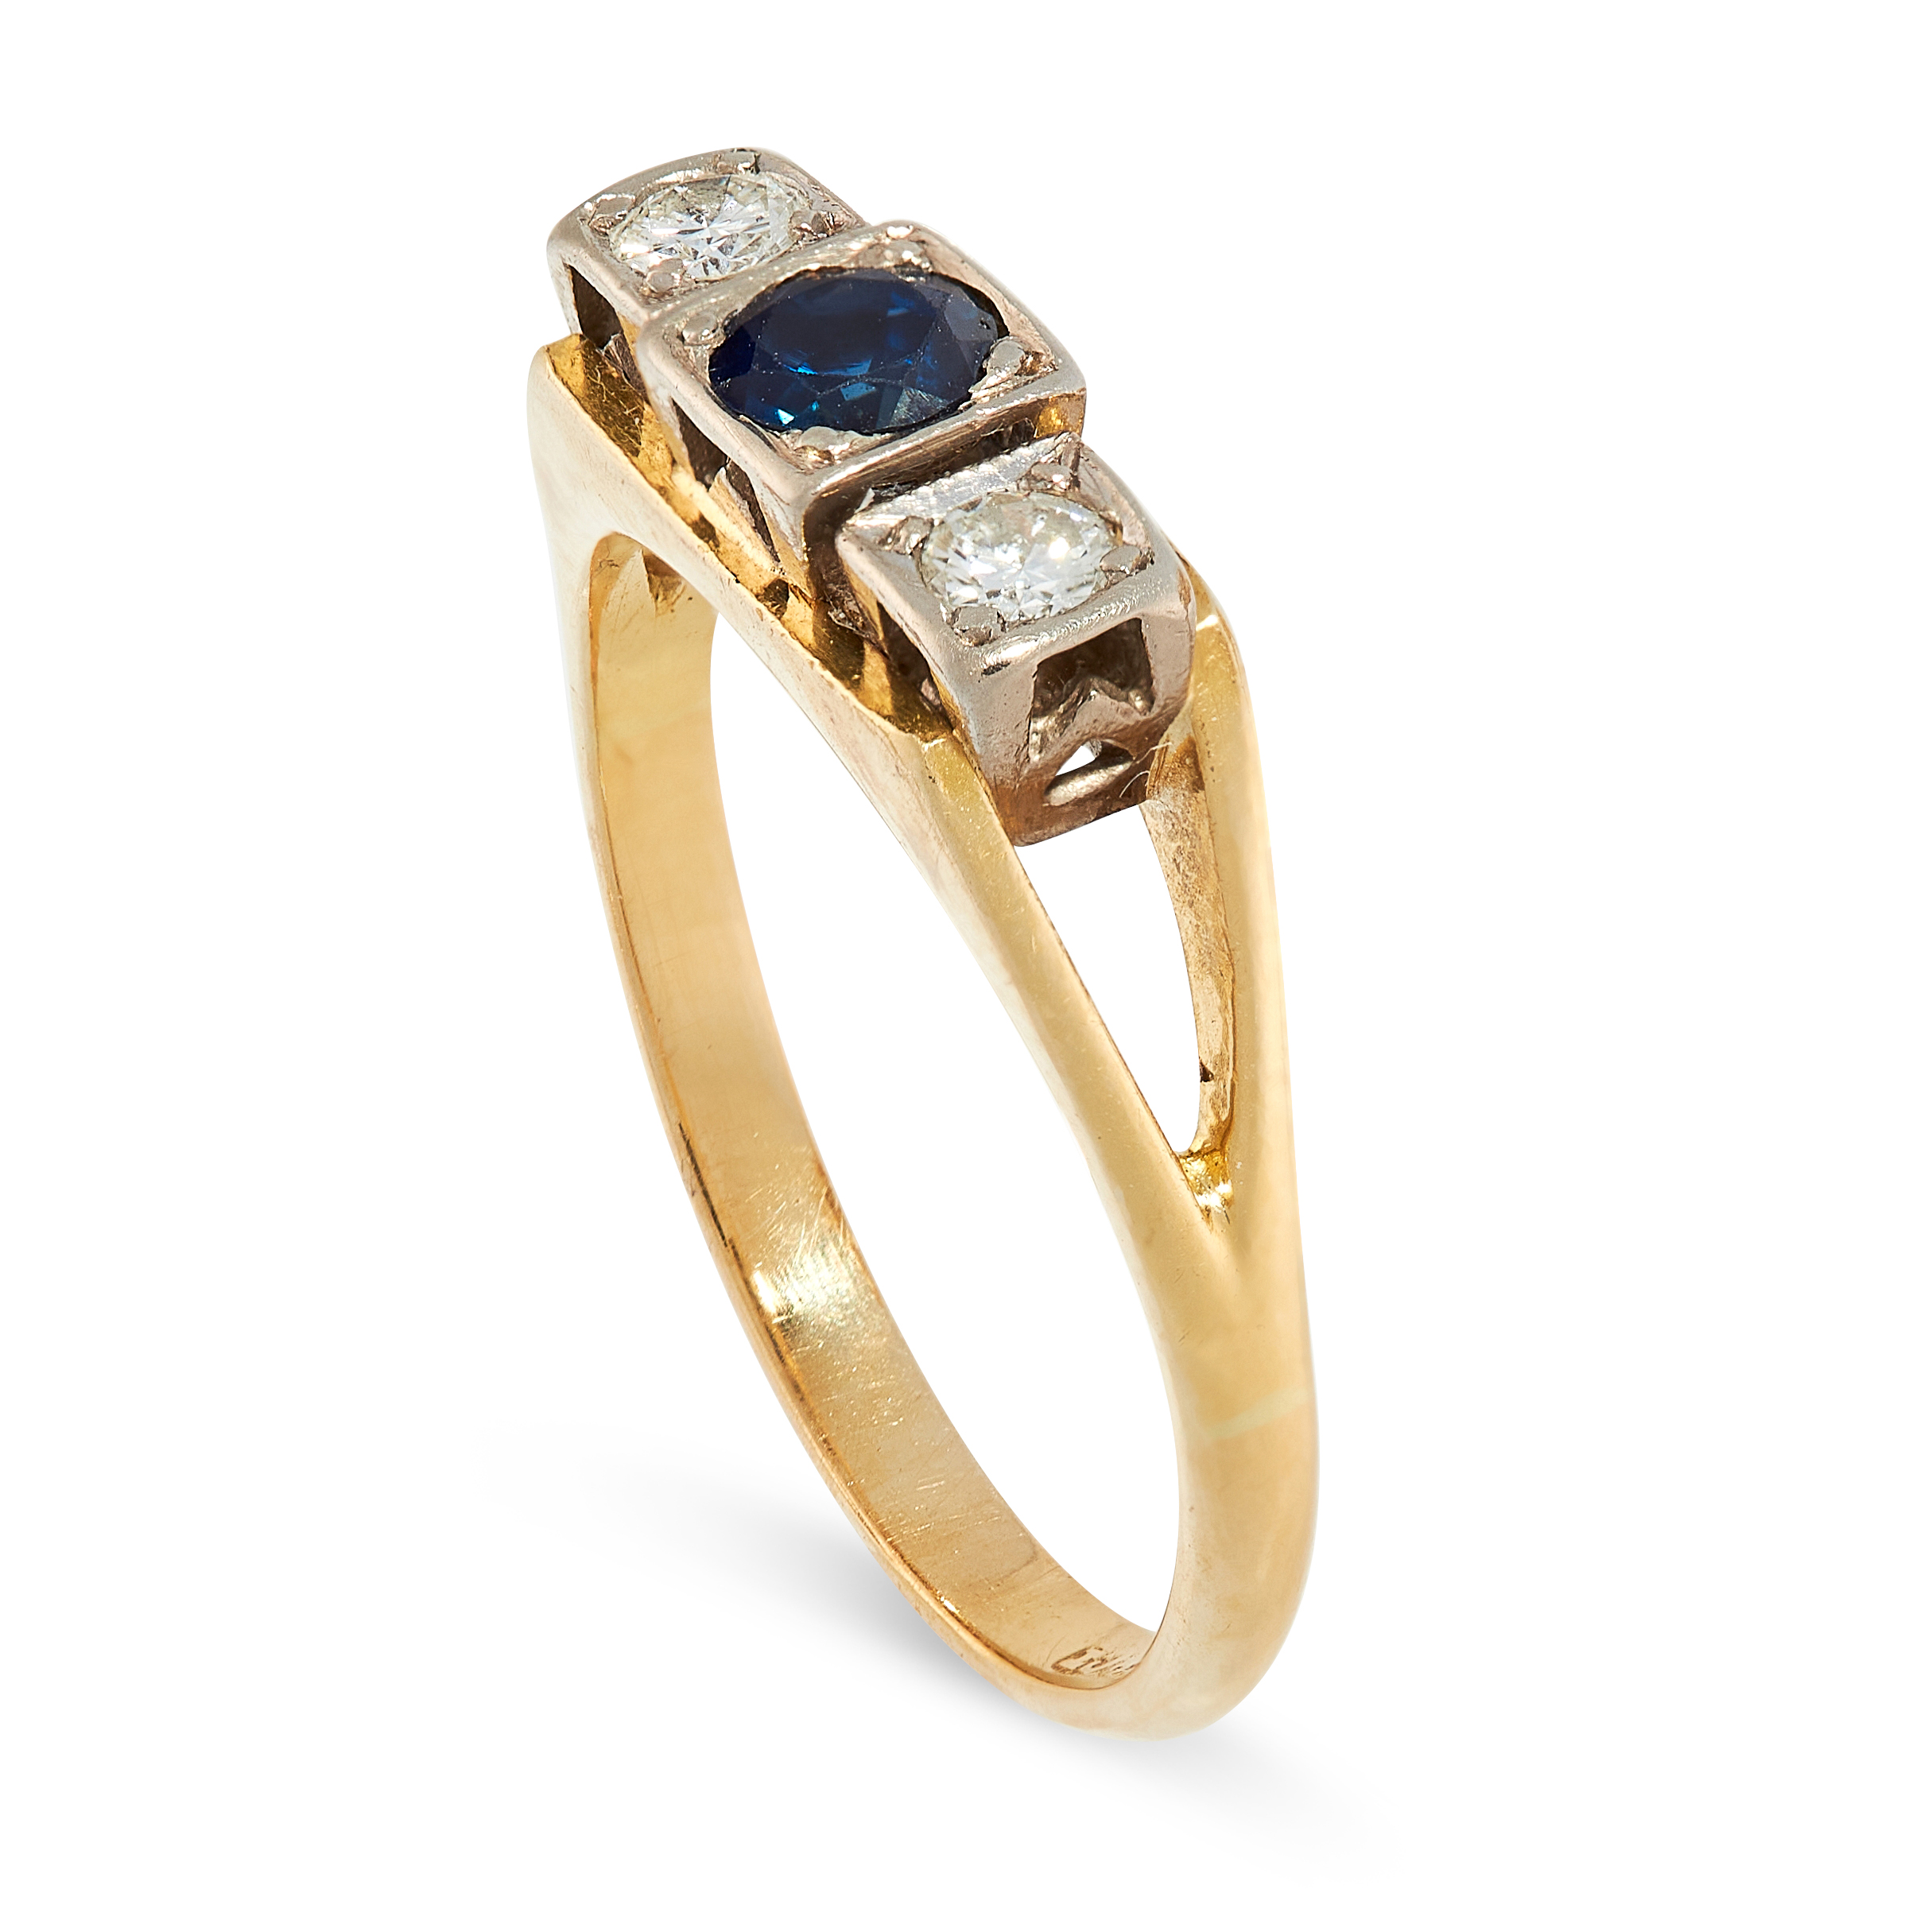 A DIAMOND AND SAPPHIRE RING in 18ct yellow gold, set with a round cut sapphire between two round cut - Image 2 of 2